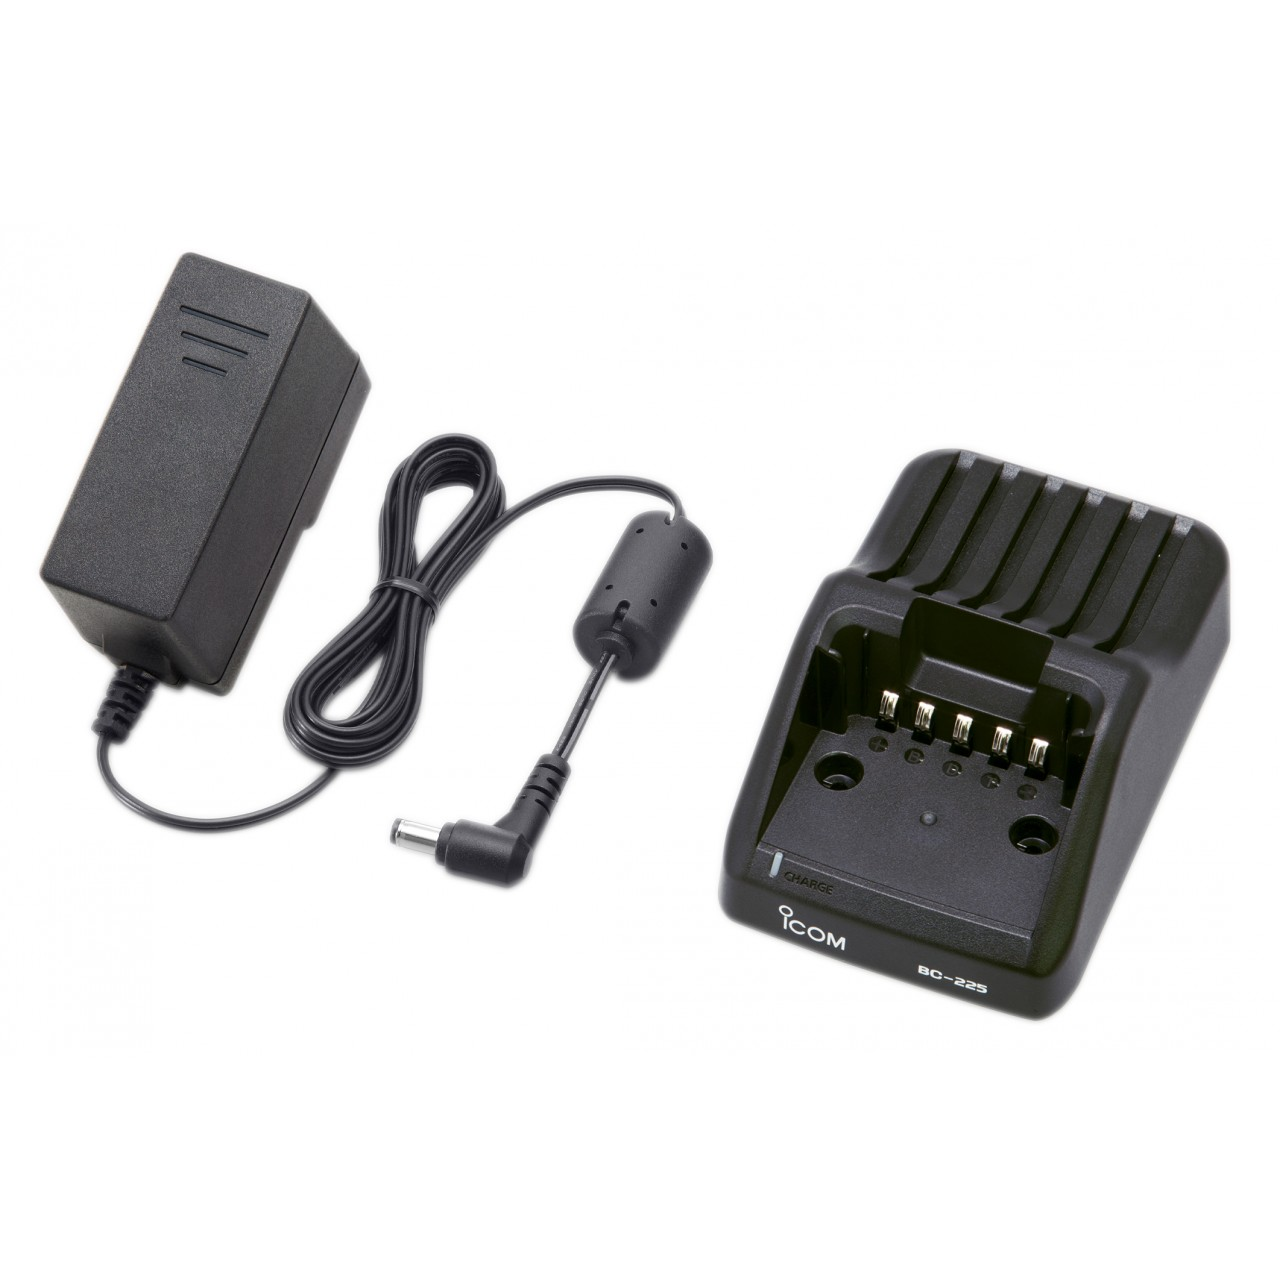 BC-225 Chargers and alimentations - ICOM